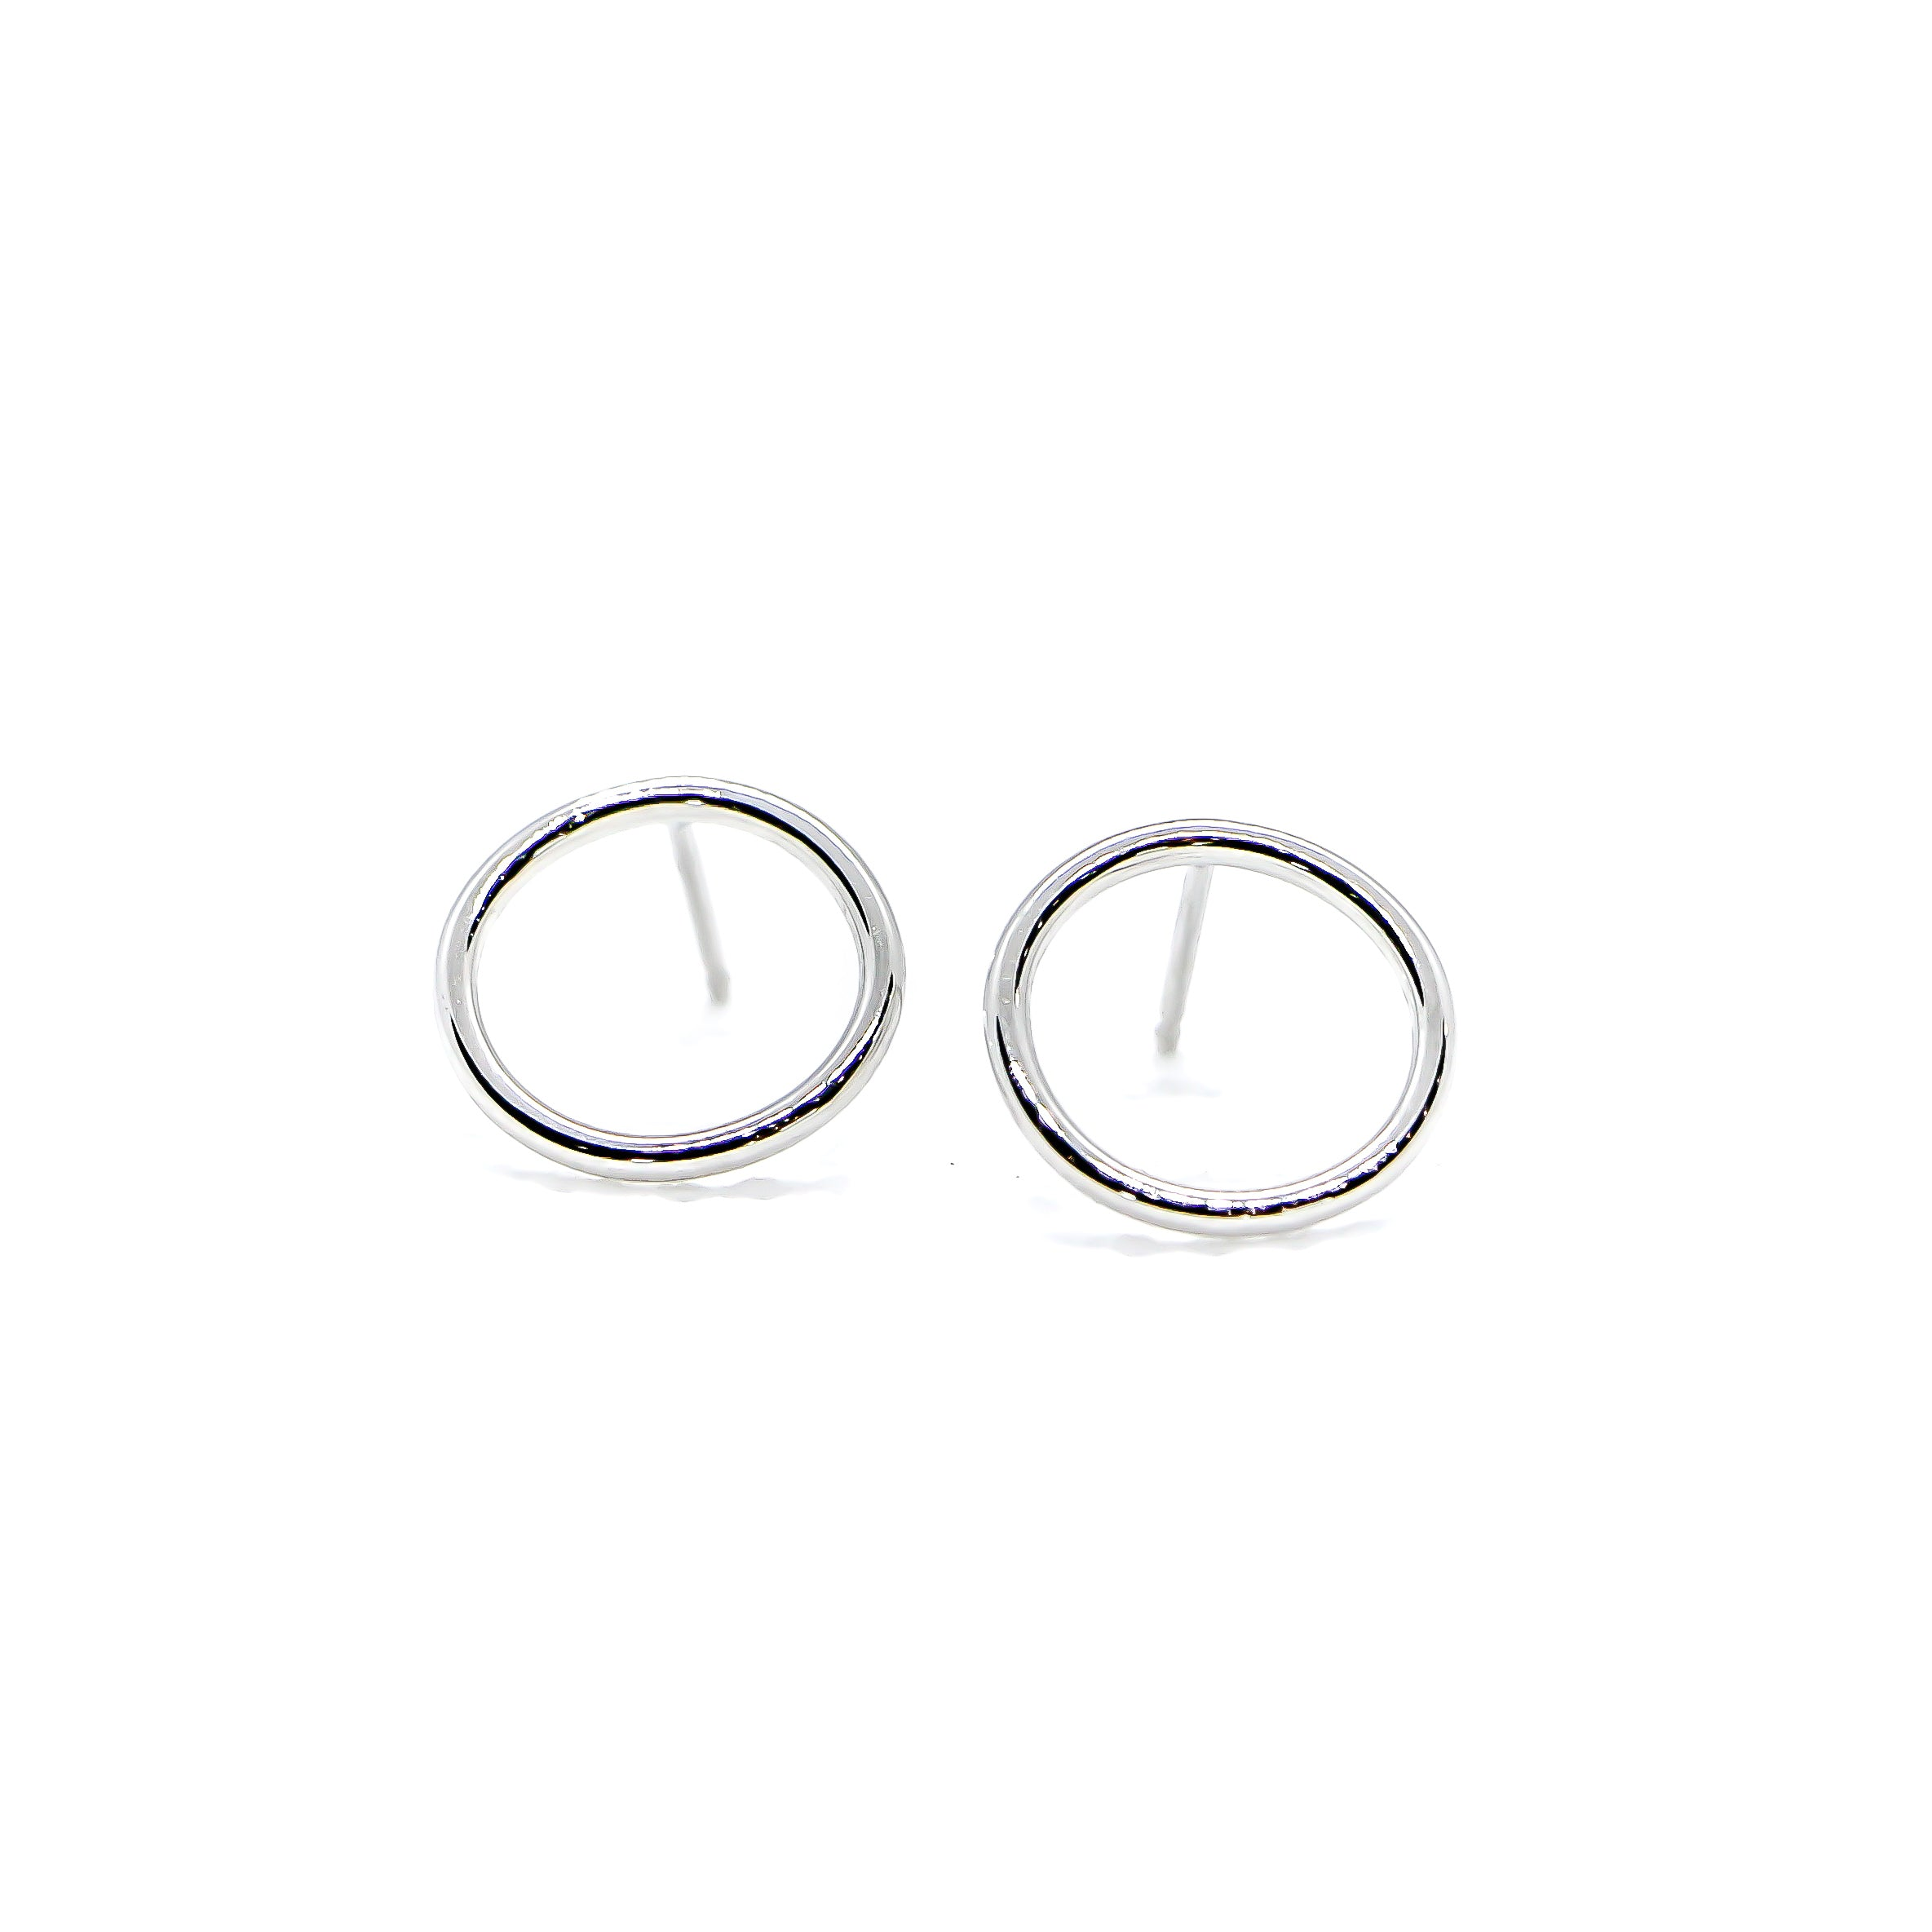 Hand Made 14k White Gold Circle Earrings